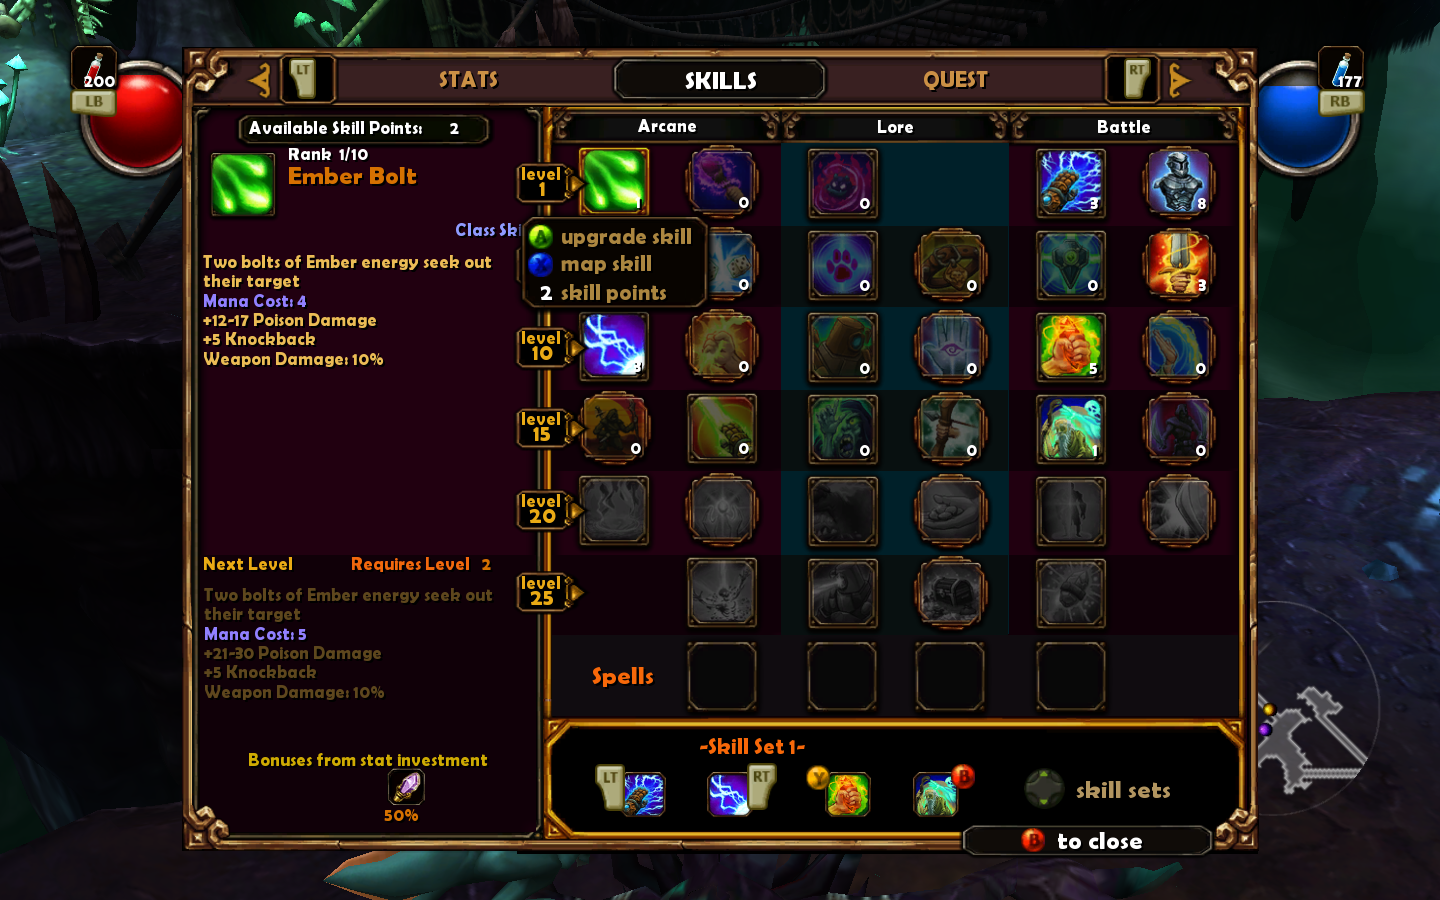 Runic Games Illuminates Torchlight Changes for XBLA